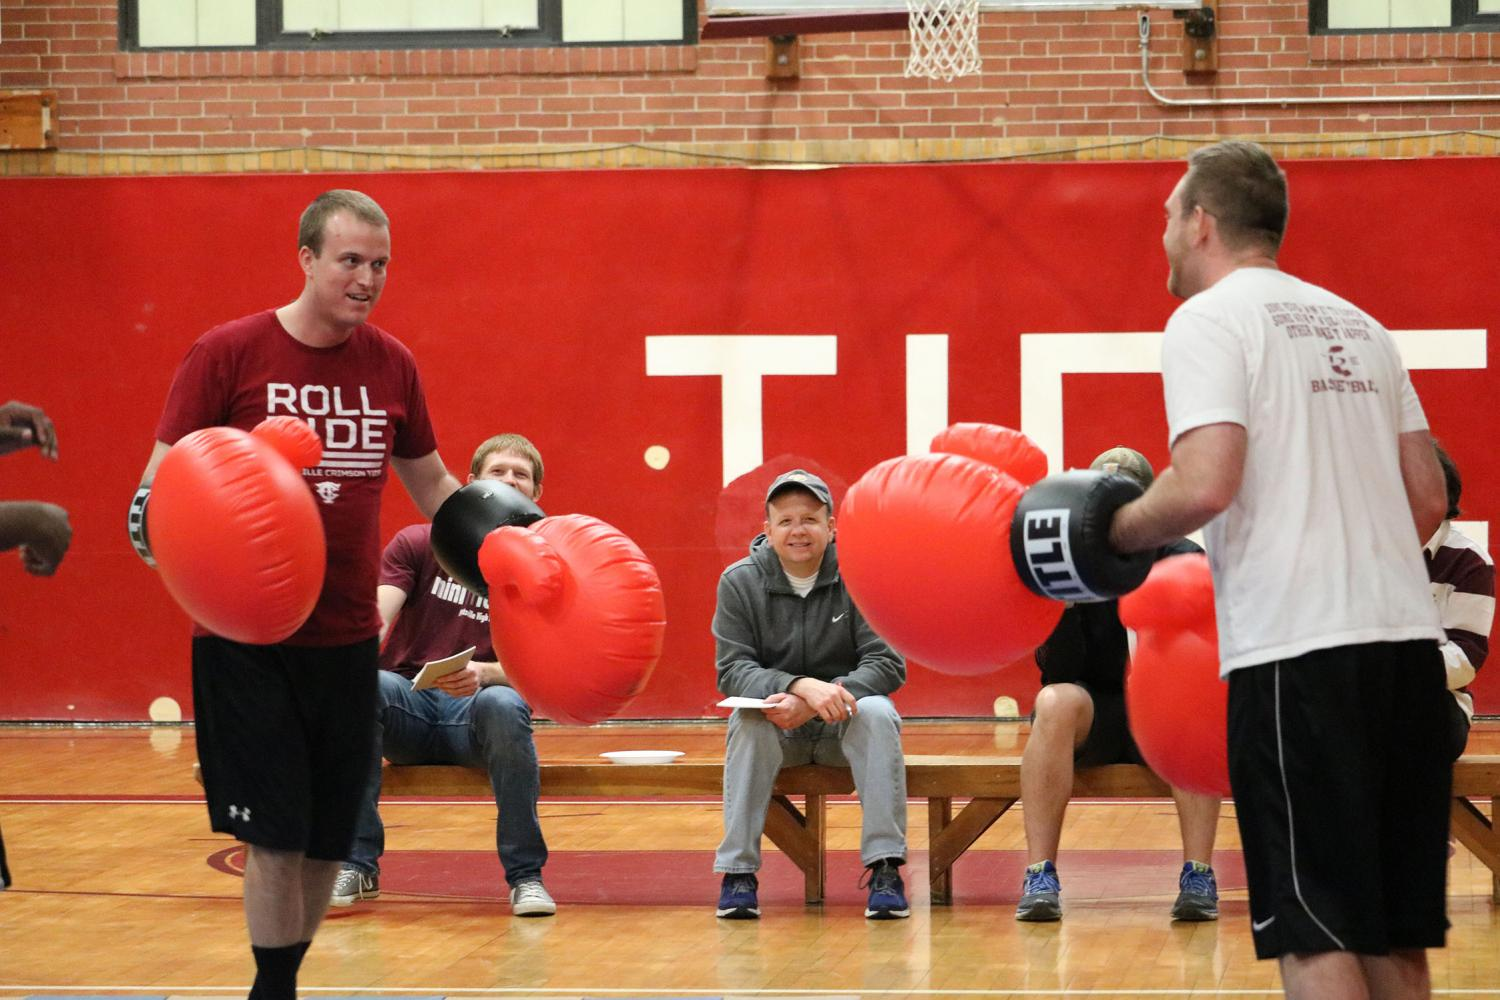 FIGHT- Mr. Nathan Halenar and Mr. Cody Blankenhorn help fight against childhood cancer by having a boxing match as part of the Mini-THON fundraiser. Students cheered on their favorite teacher. At the end of the fight, Mr. Blankenhorn won.